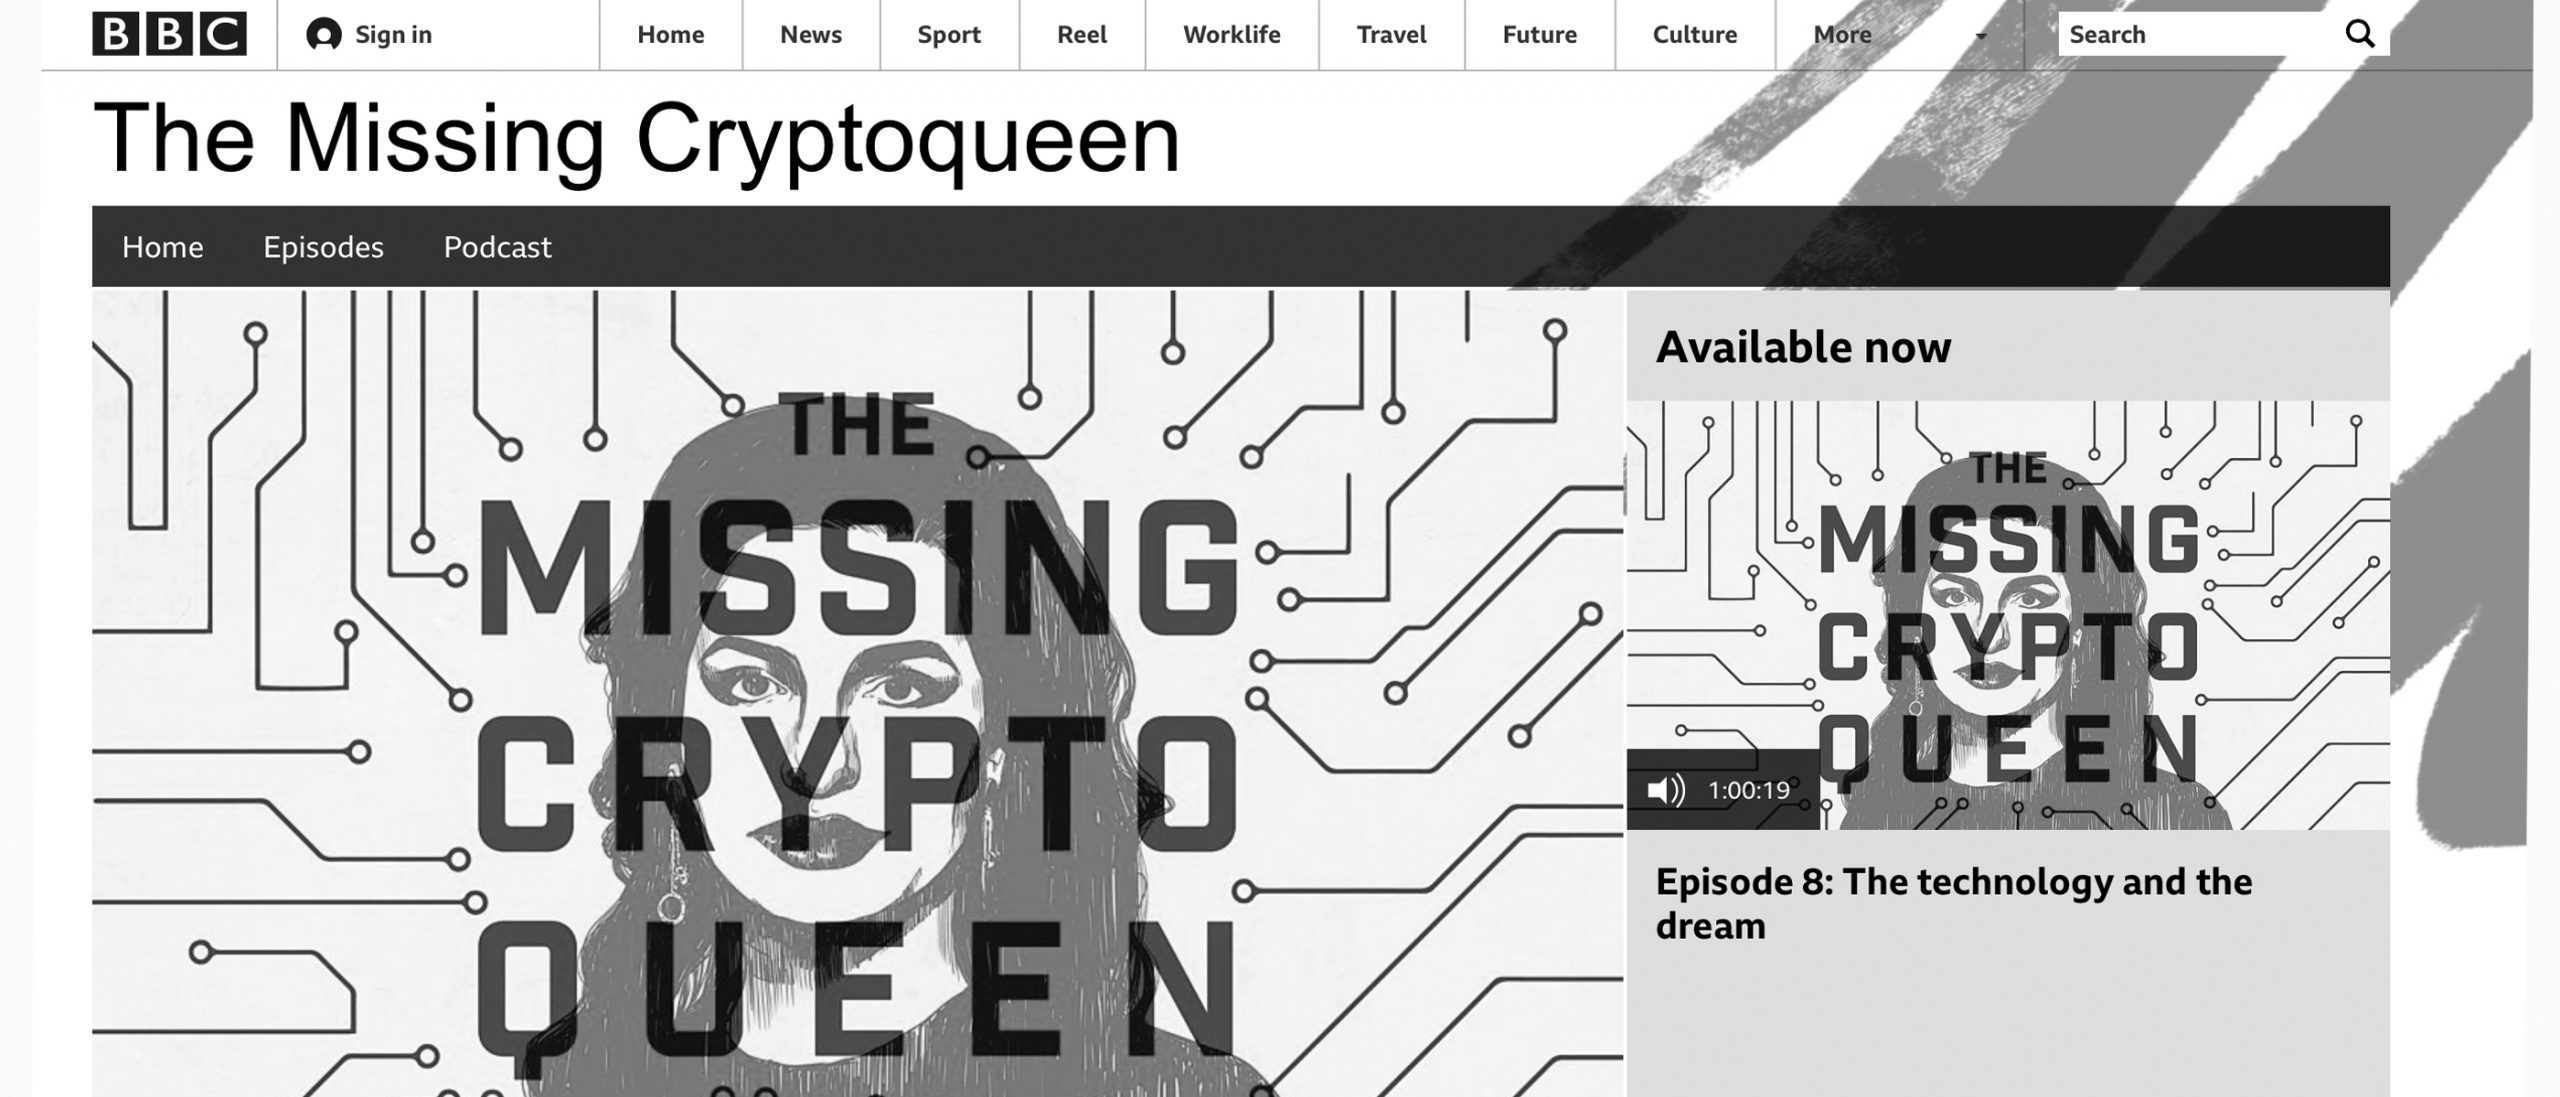 "New Regency Television gana los derechos de pantalla de Onecoin Story - The Missing Cryptoqueen ""width ="" 2560 ""height = ""1097"" srcset = ""https://blackswanfinances.com/wp-content/uploads/2020/02/cryptoqueen-scaled.jpg 2560w, https://news.bitcoin.com/wp-content/uploads/ 2020/02 / cryptoqueen-300x129.jpg 300w, https://news.bitcoin.com/wp-content/uploads/2020/02/cryptoqueen-1024x439.jpg 1024w, https://news.bitcoin.com/wp- content / uploads / 2020/02 / cryptoqueen-768x329.jpg 768w, https://news.bitcoin.com/wp-content/uploads/2020/02/cryptoqueen-1536x658.jpg 1536w, https: //news.bitcoin. com / wp-content / uploads / 2020/02 / cryptoqueen-2048x878.jpg 2048w, https://news.bitcoin.com/wp-content/uploads/2020/02/cryptoqueen-696x298.jpg 696w, https: // news.bitcoin.com/wp-content/uploads/2020/02/cryptoqueen-1392x597.jpg 1392w, https://news.bitcoin.com/wp-content/uploads/202 0/02 / cryptoqueen-1068x458.jpg 1068w, https://news.bitcoin.com/wp-content/uploads/2020/02/cryptoqueen-980x420.jpg 980w, https://news.bitcoin.com/wp- content / uploads / 2020/02 / cryptoqueen-1920x823.jpg 1920w ""tamaños ="" (ancho máximo: 2560px) 100vw, 2560px"